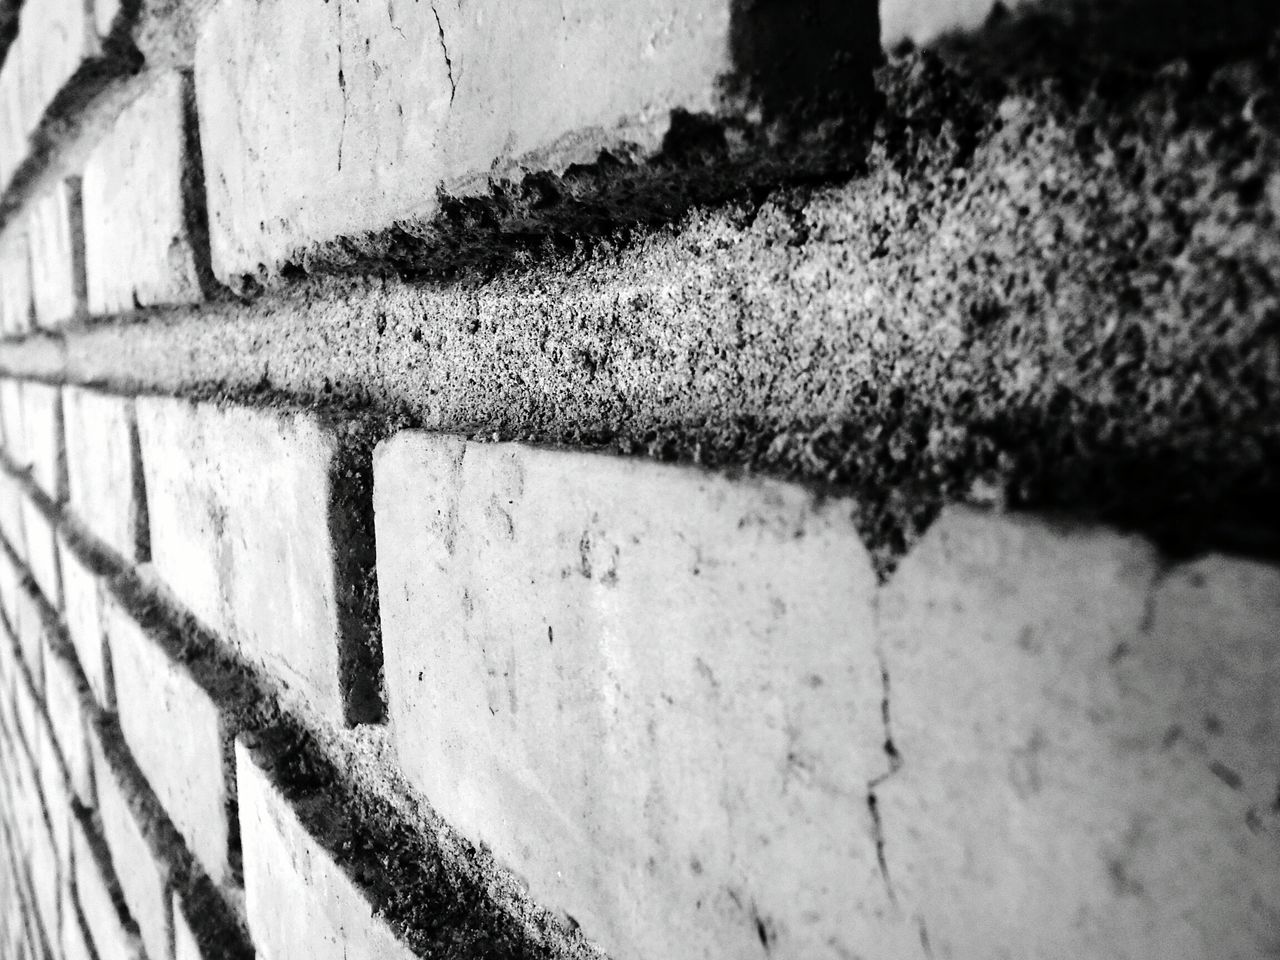 Texture First Eyeem Photo Picture Compositions Taking Photos Capture The Moment Photography Check This Out Lightanddark Perspective Photography Arquitecture Inspirations Street Photography Dead Blackandwhite Dark The Architect - 2017 EyeEm Awards